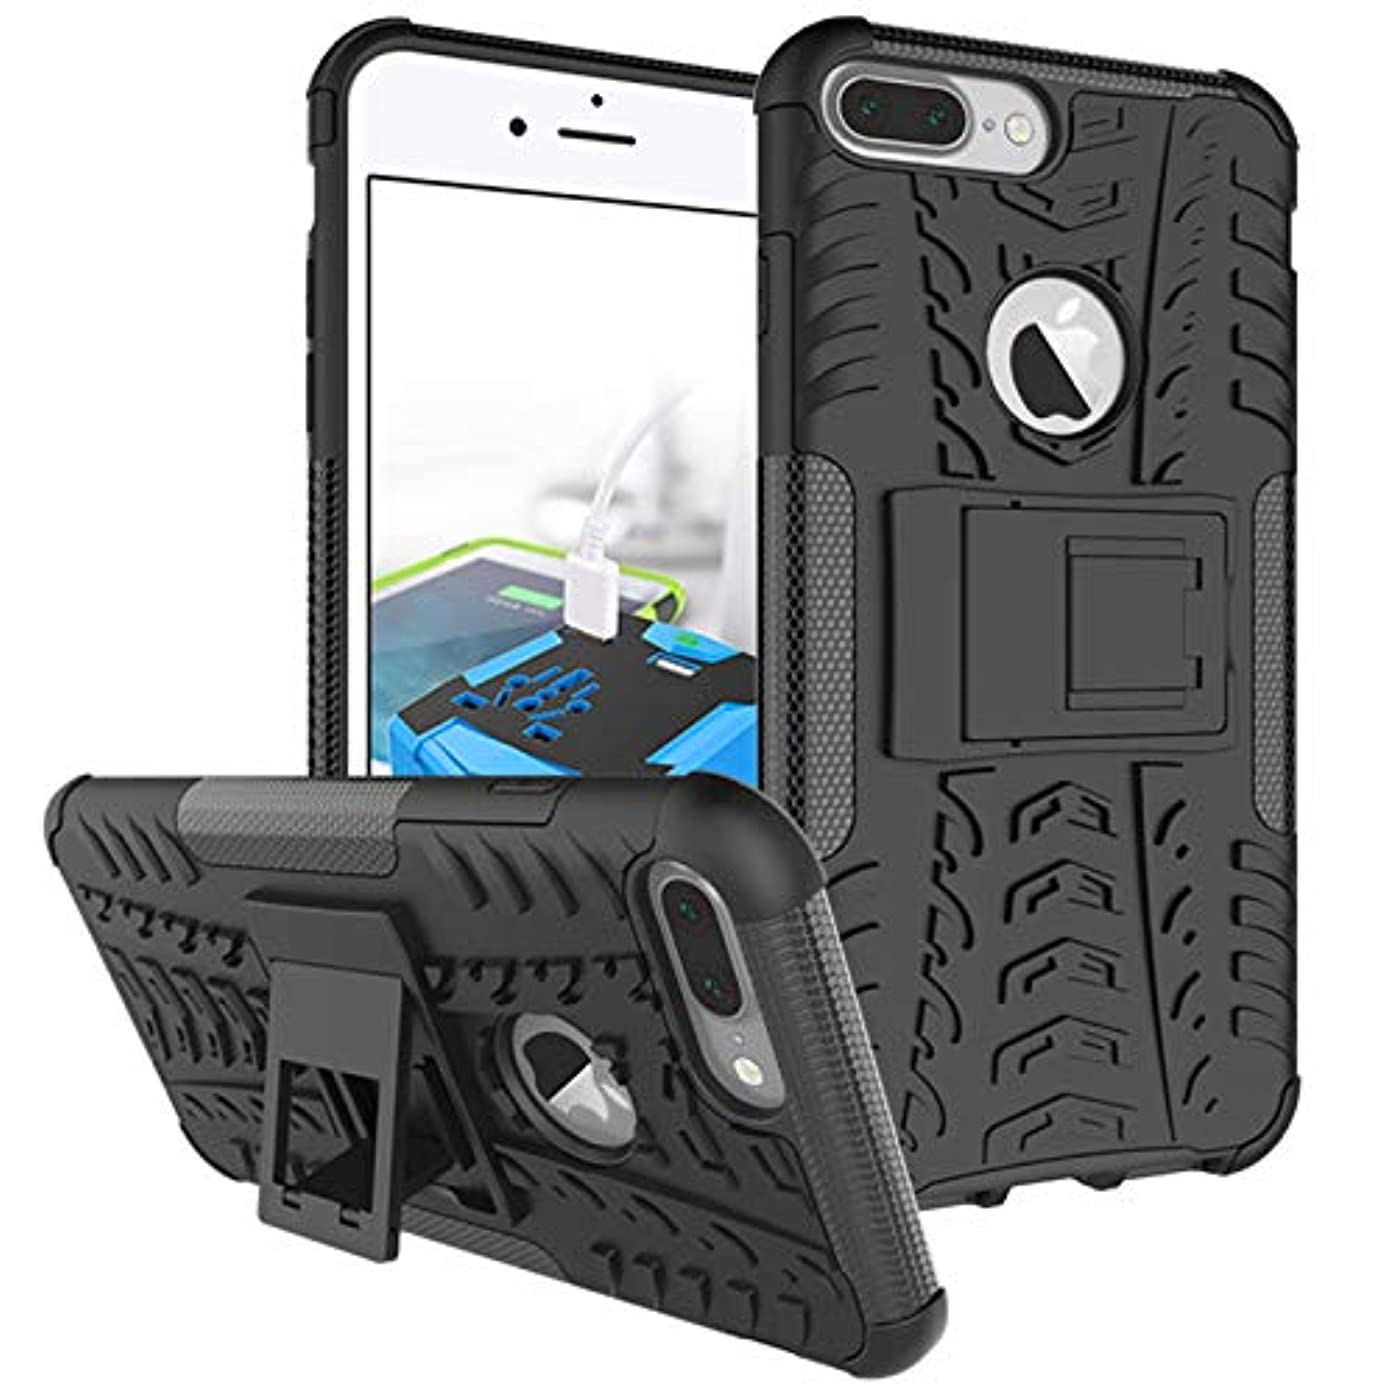 iPhone 7 Plus Case, iPhone 8 Plus Case, Viodolge [Shockproof] Rugged Dual Layer Protective Phone Case Cover with Kickstand for iPhone 7 Plus / 8 Plus (Black)